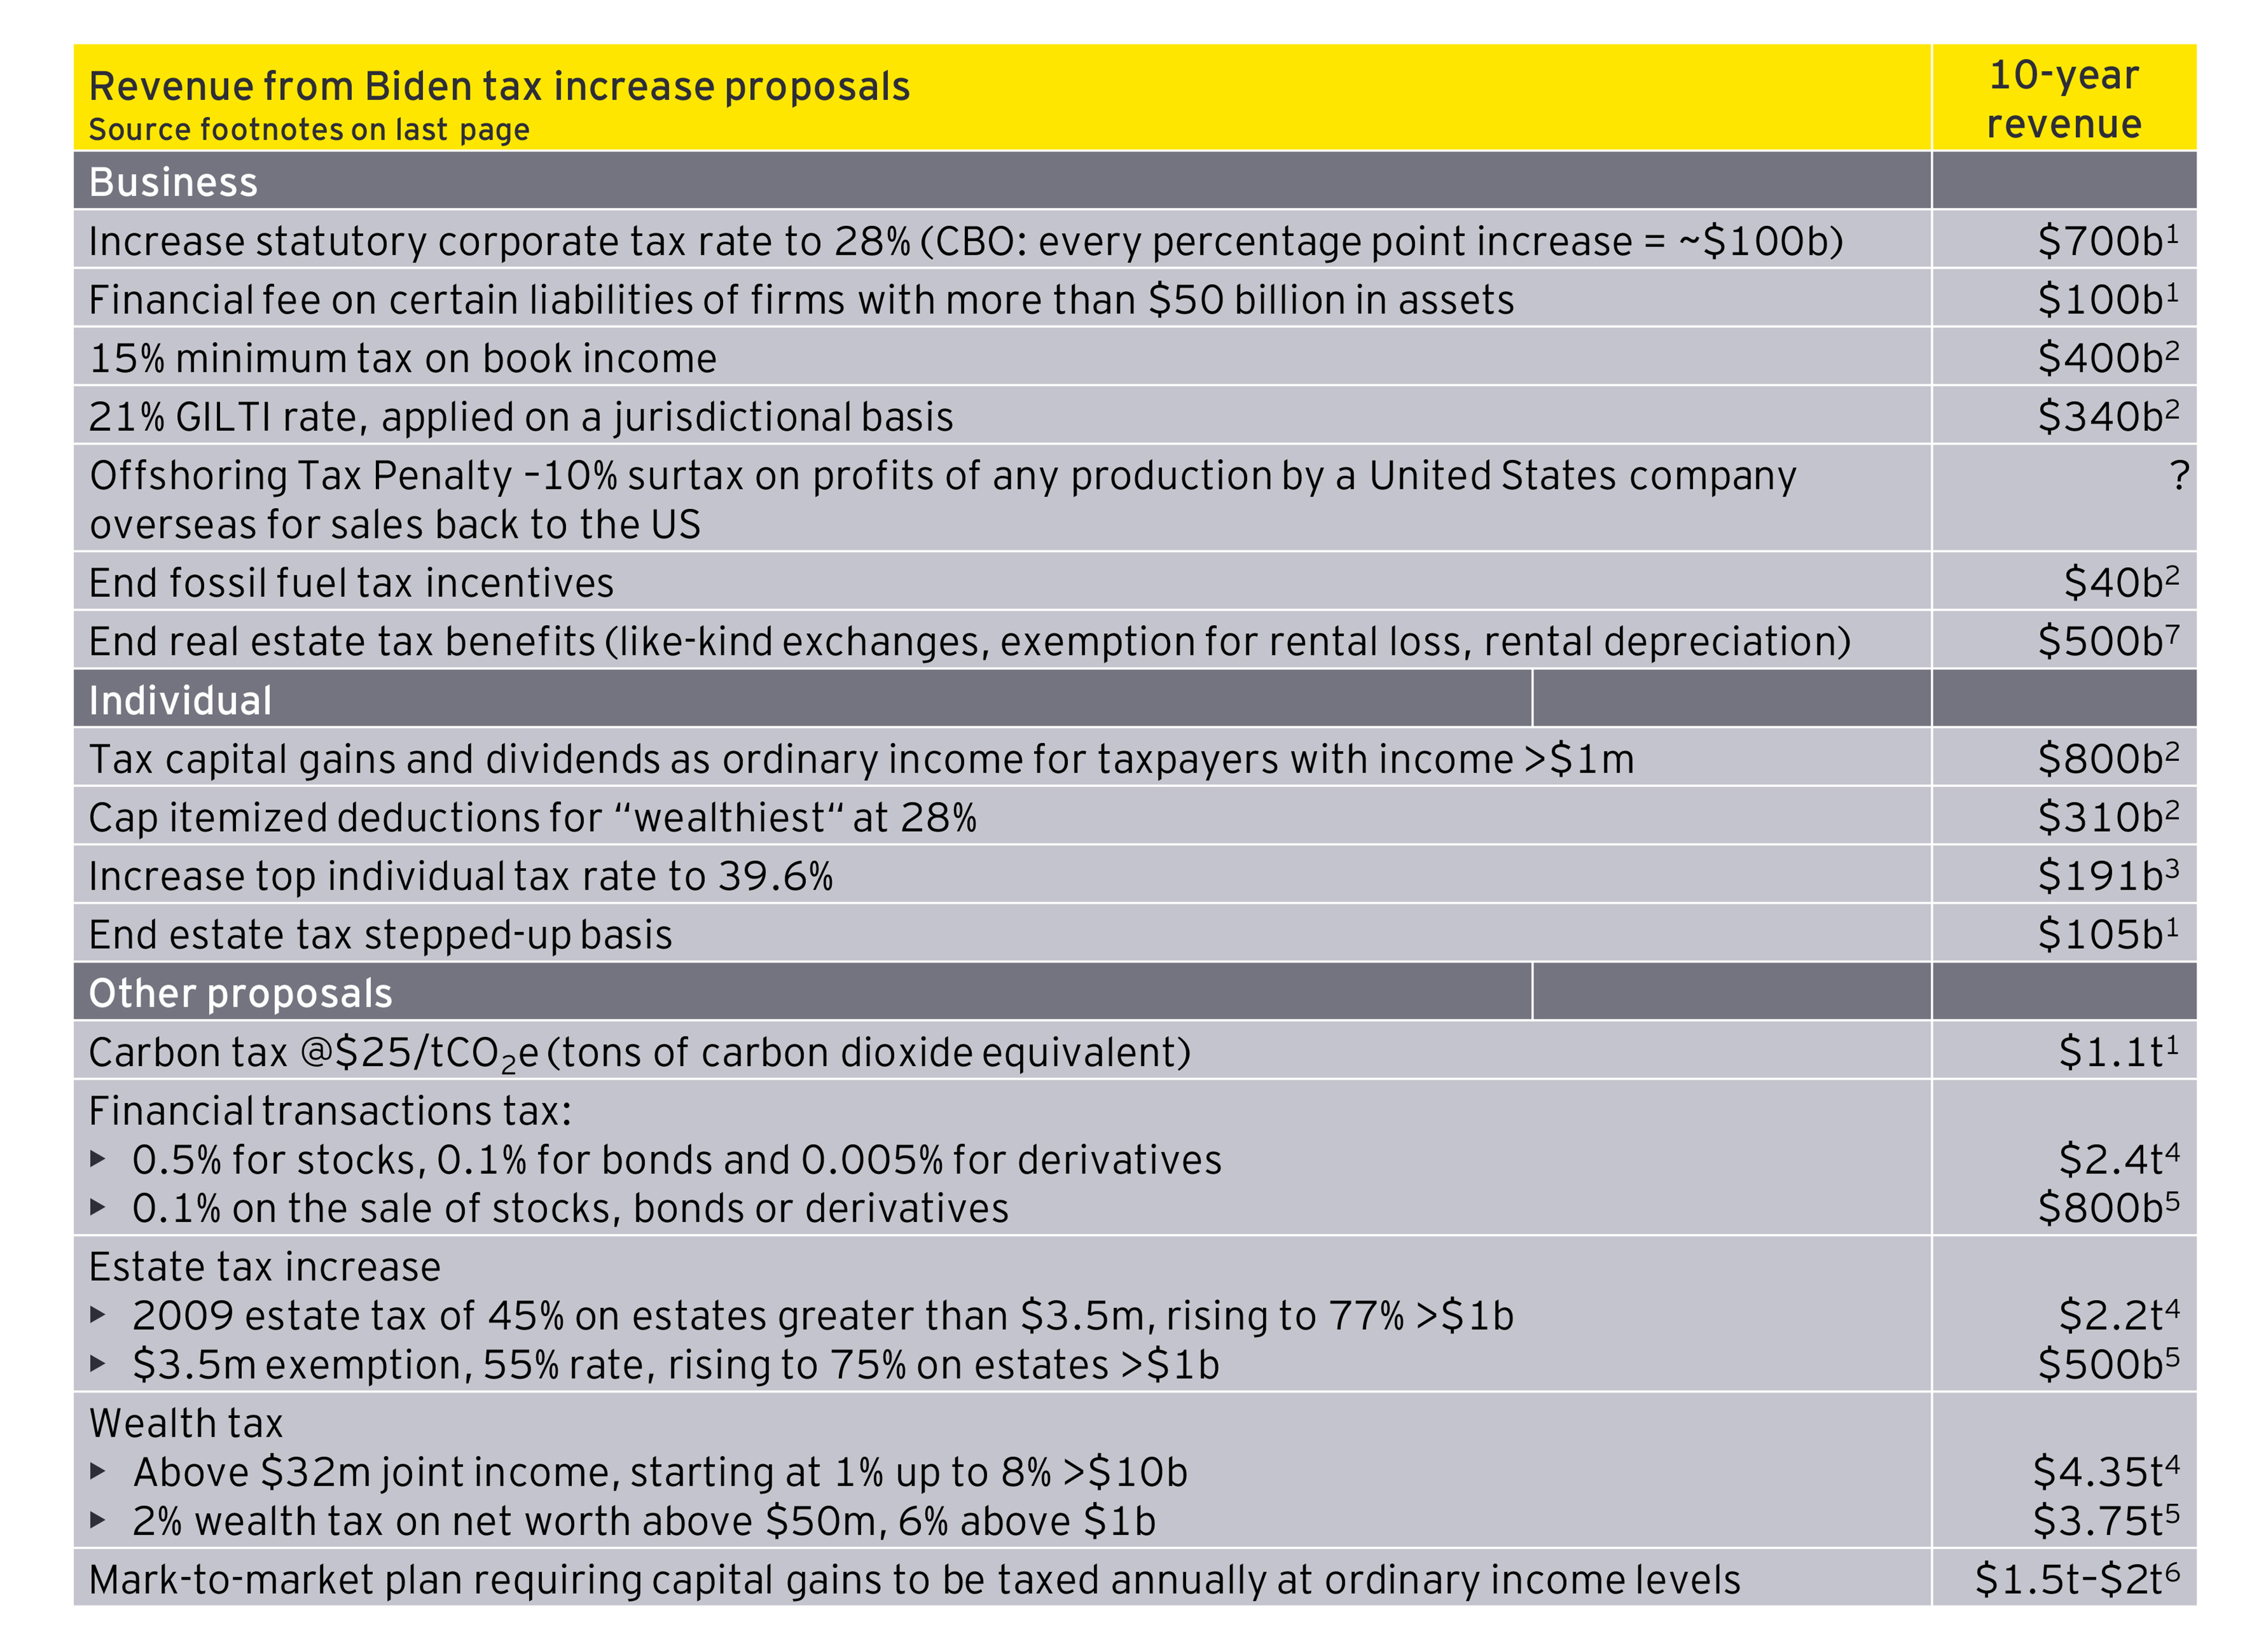 EY - Revenue from biden tax increase proposals